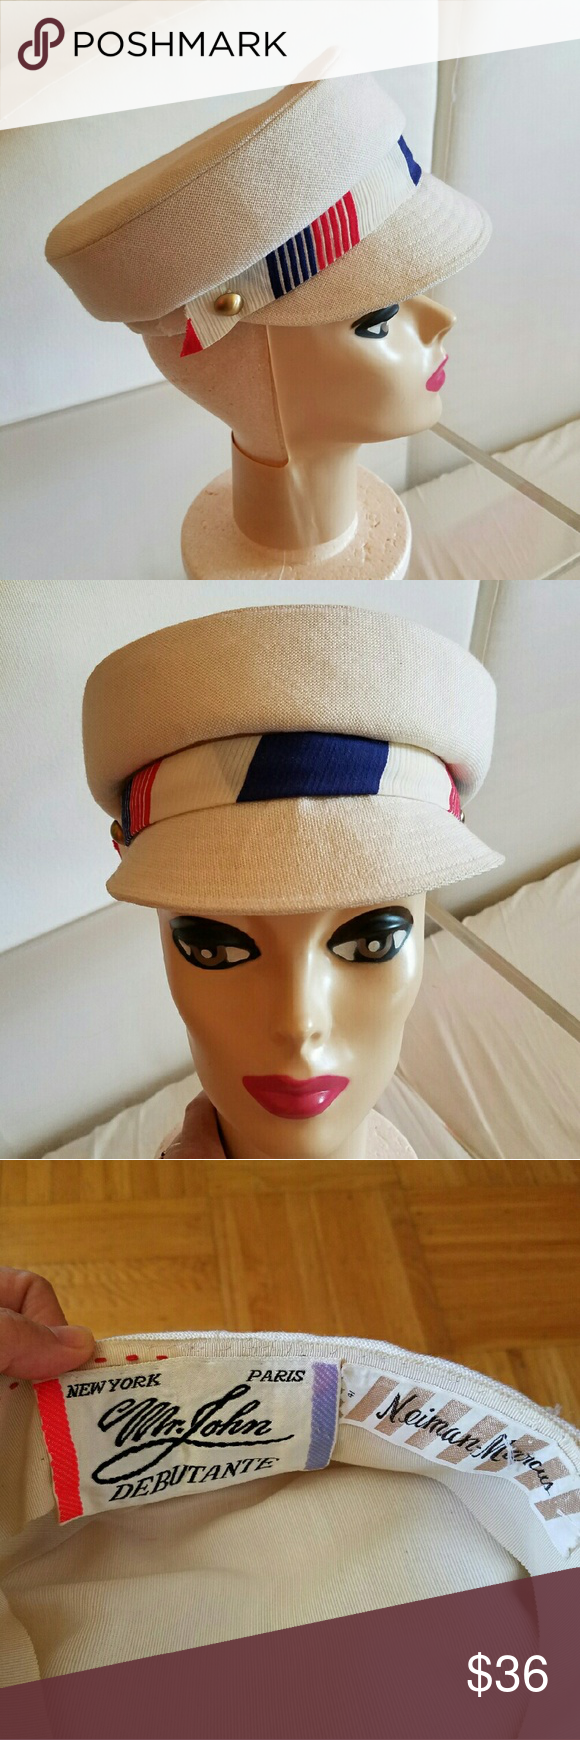 "Amazing 60s vintage stewardess uniform cap Mr. John Debutante sold by Neiman Marcus - true vintage uniform-style cap with red/blue accent band and gold tone buttons. White/cream linen. Excellent condition small brim, 6 3/4"" inside diam Vintage Accessories Hats"